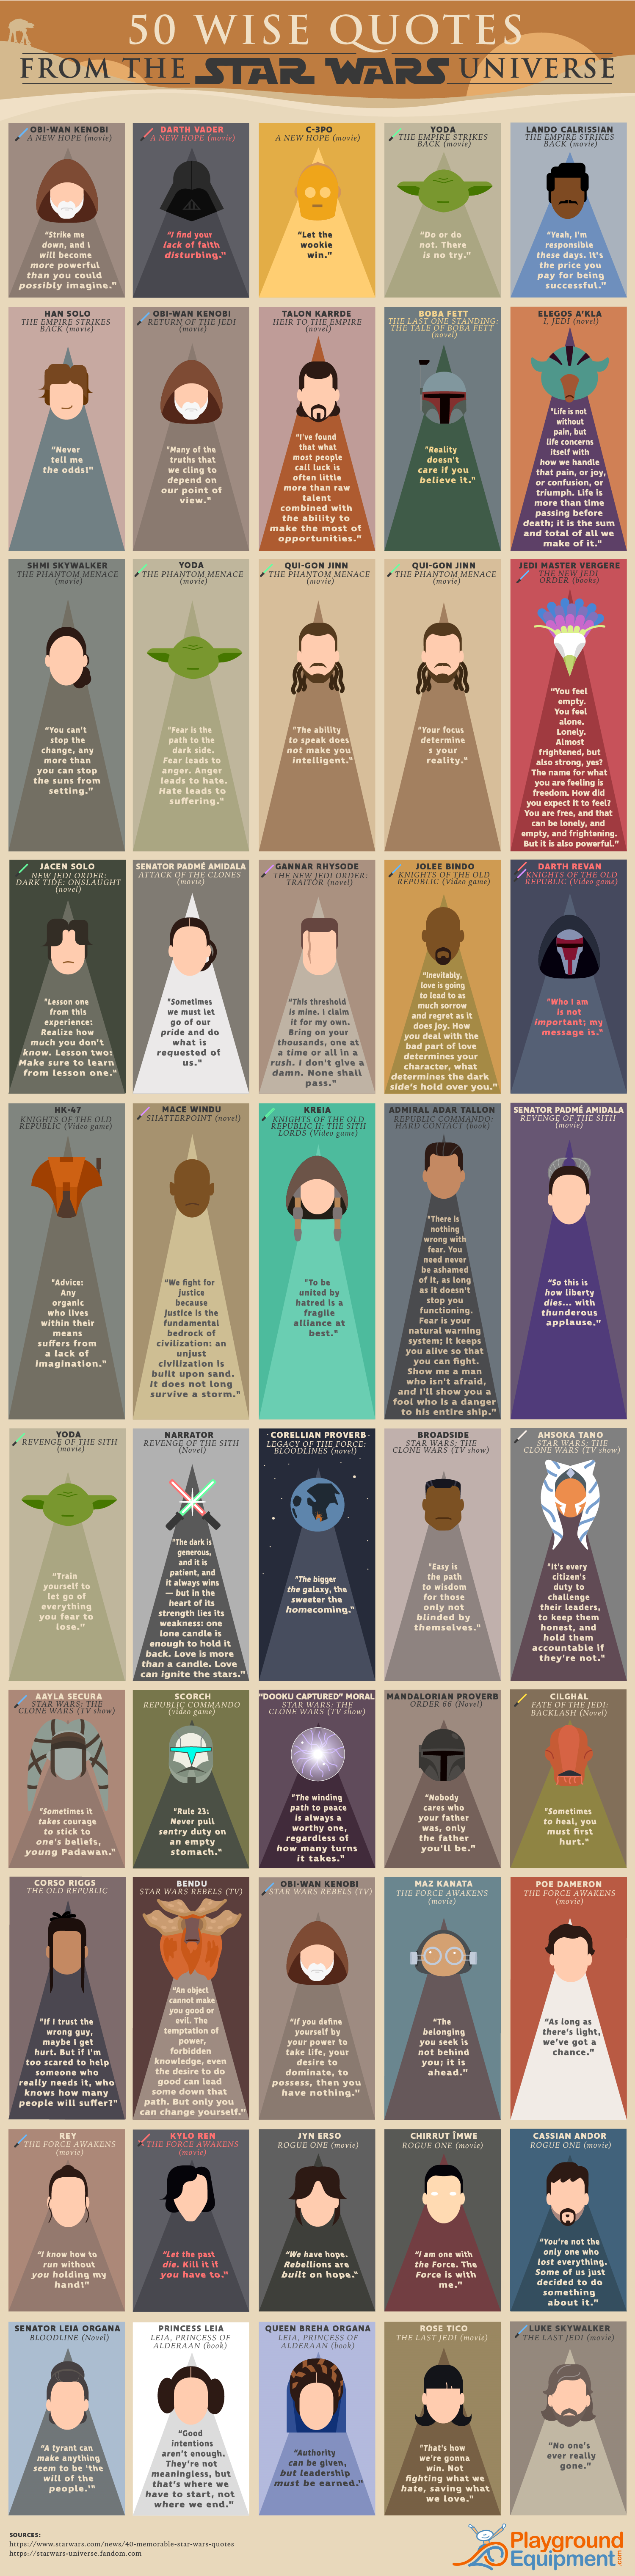 50 Wise Quotes from the Star Wars Universe Infographic